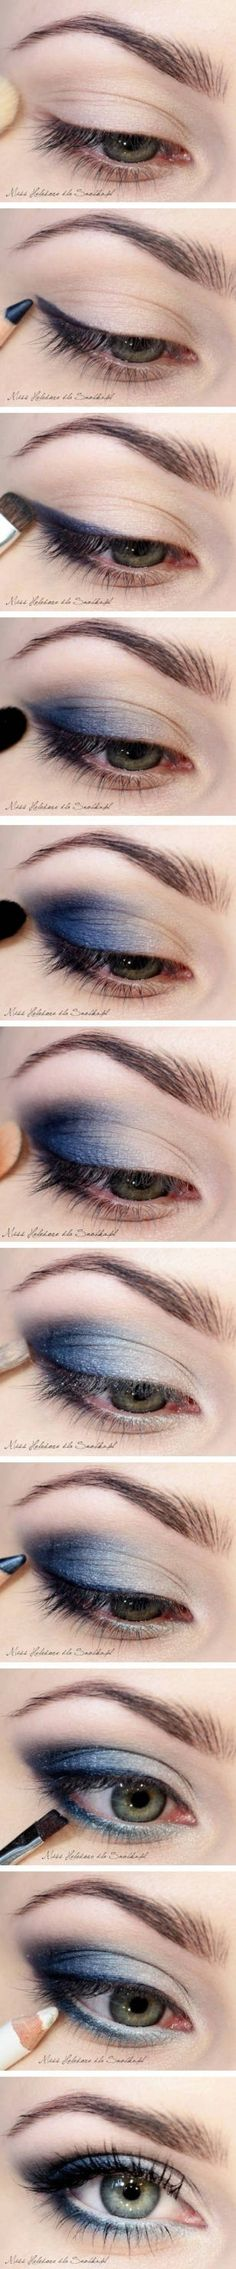 Blue smokey eye technique